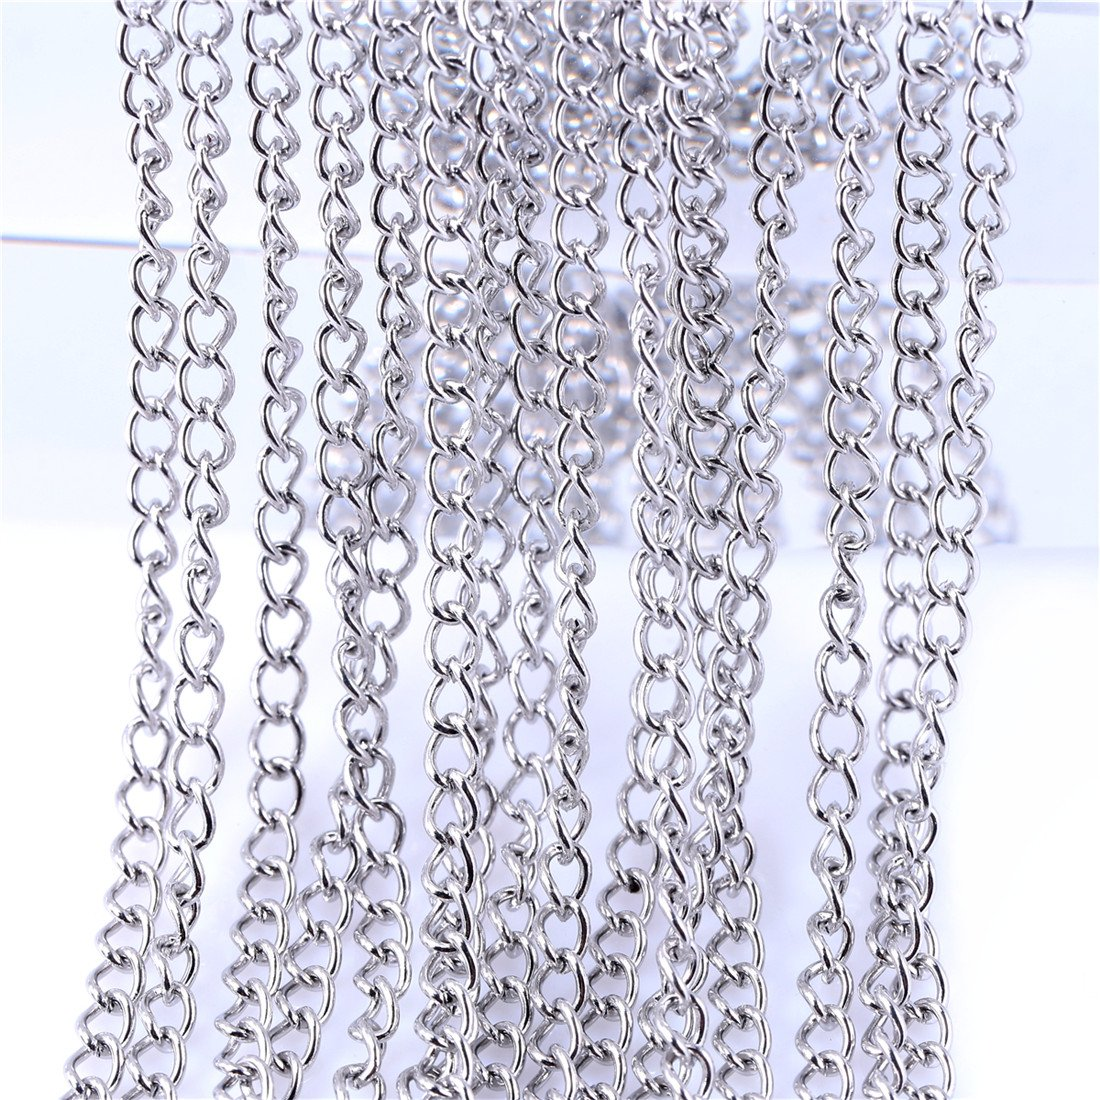 33FT Stainless Steel Cable Chain Link in Bulk for Necklace Jewelry Accessories DIY Making 2.5x3mm